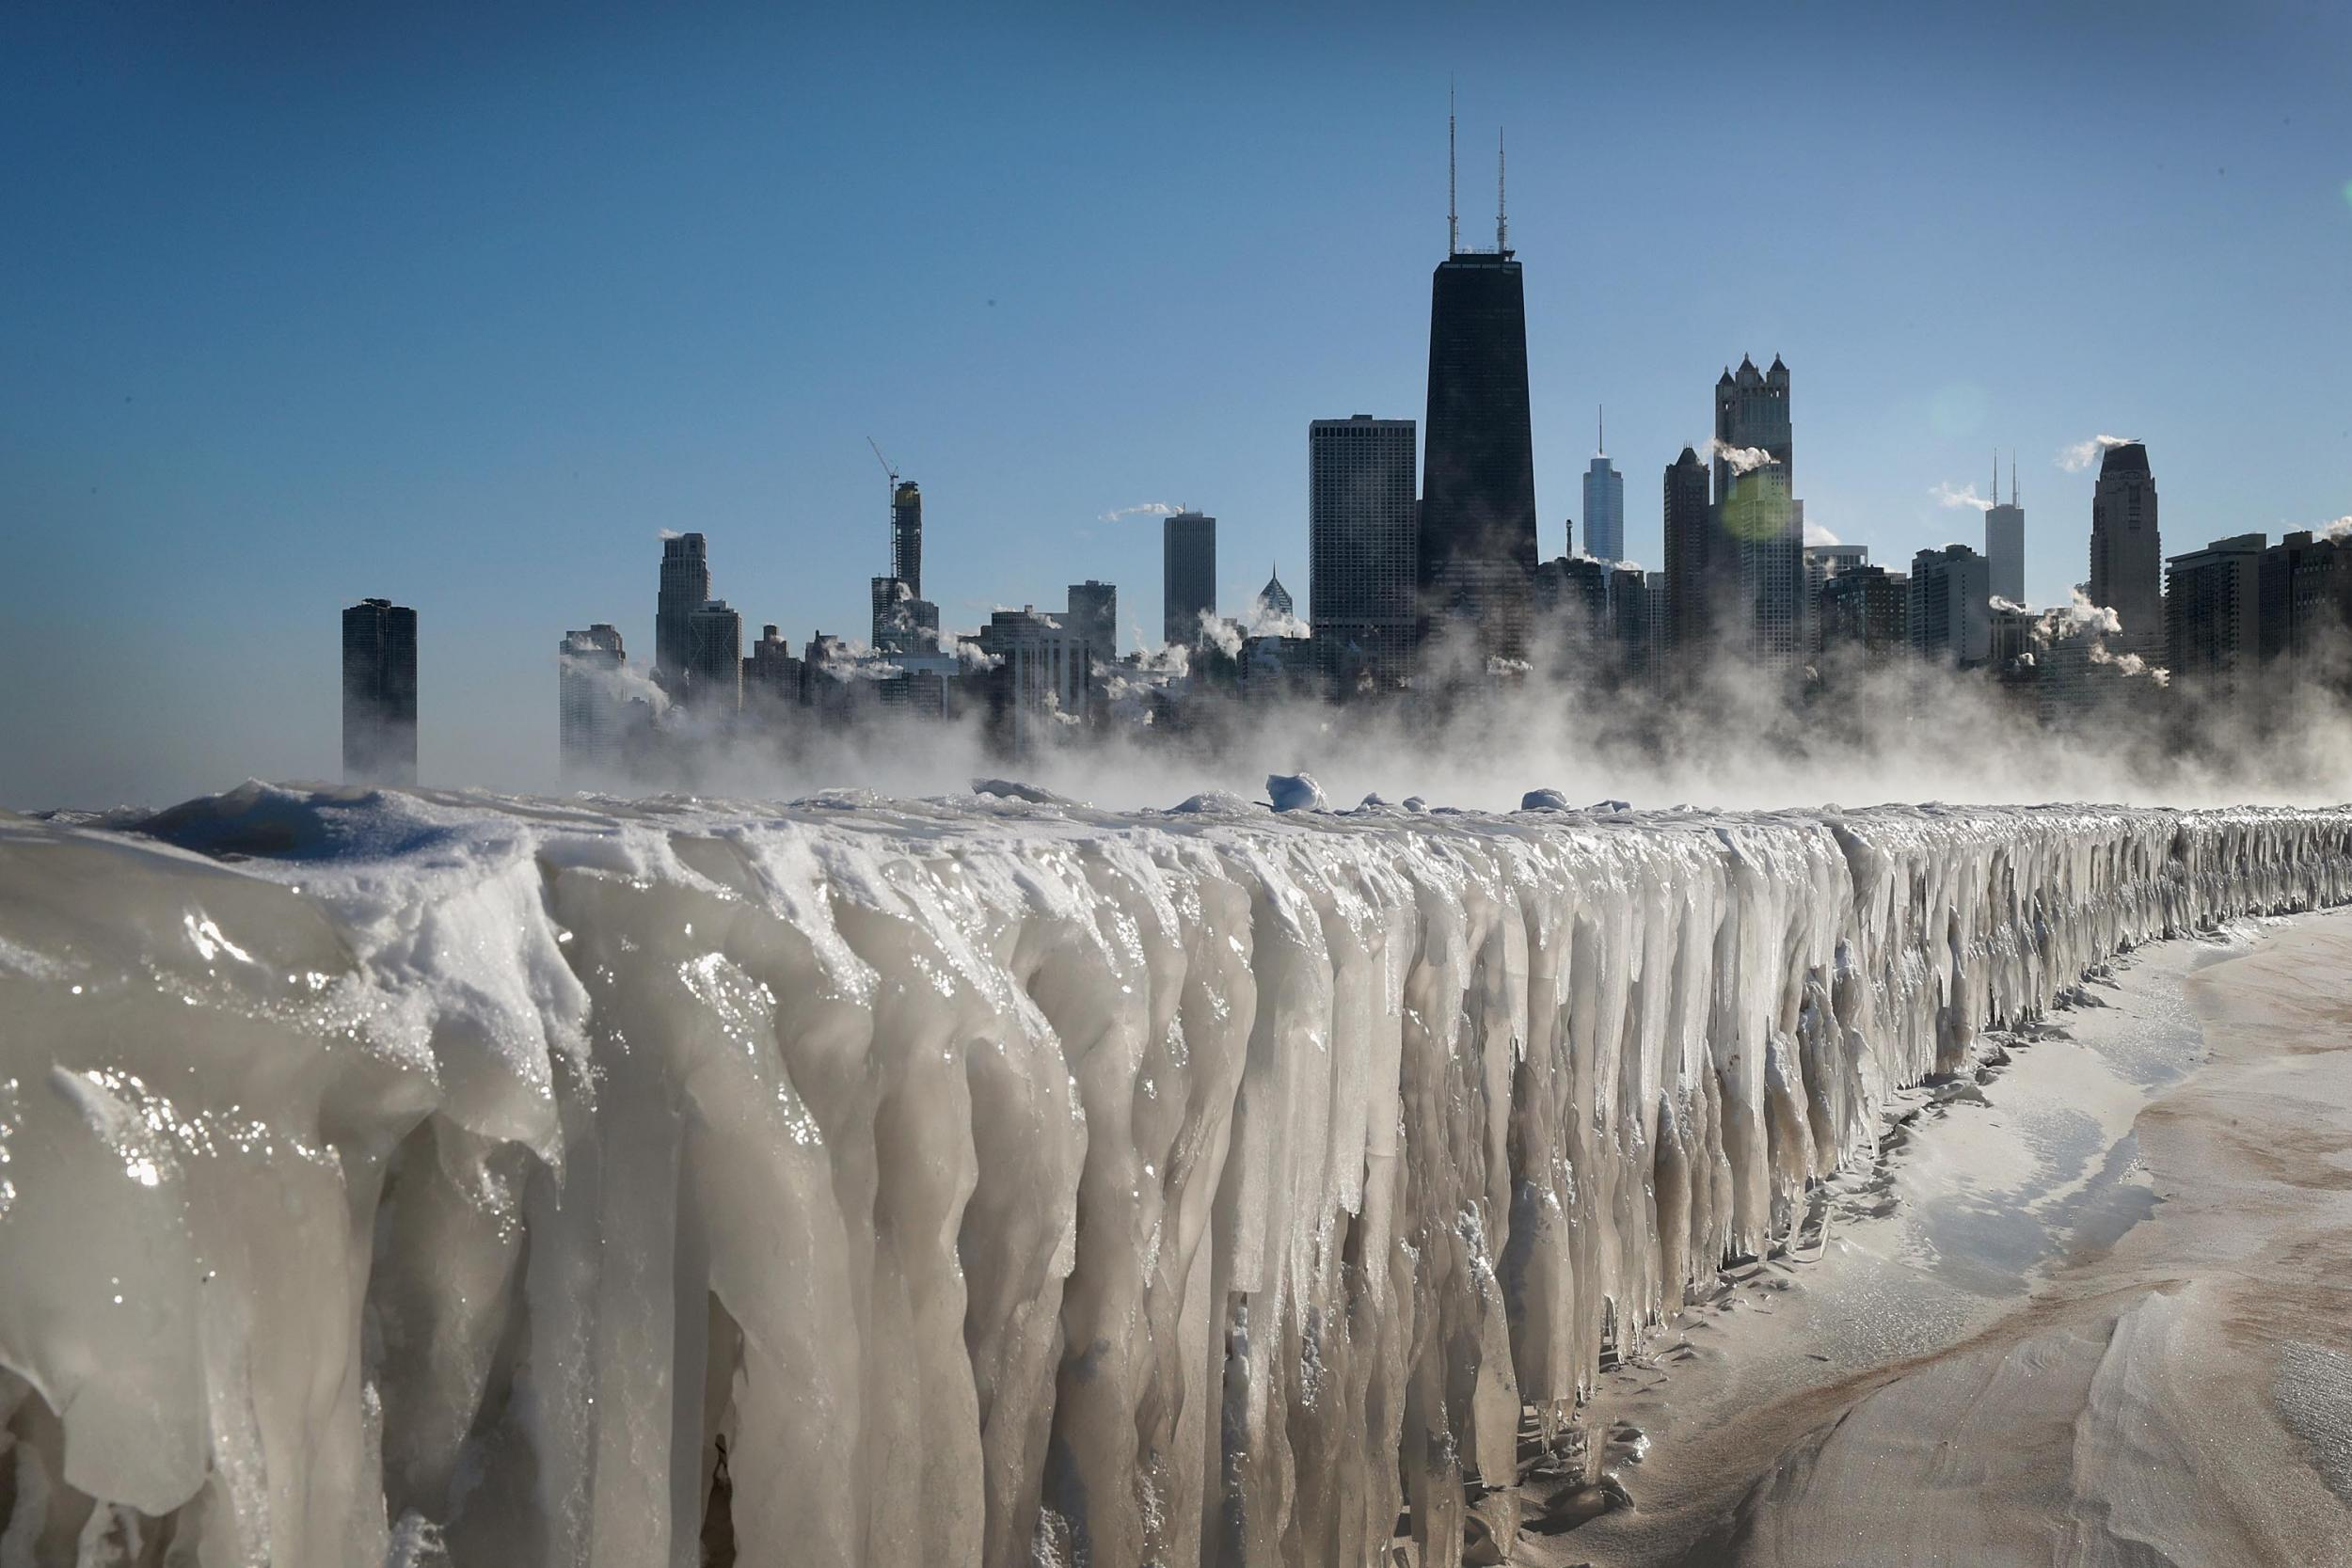 Lake Michigan has frozen over and the pictures are spectacular